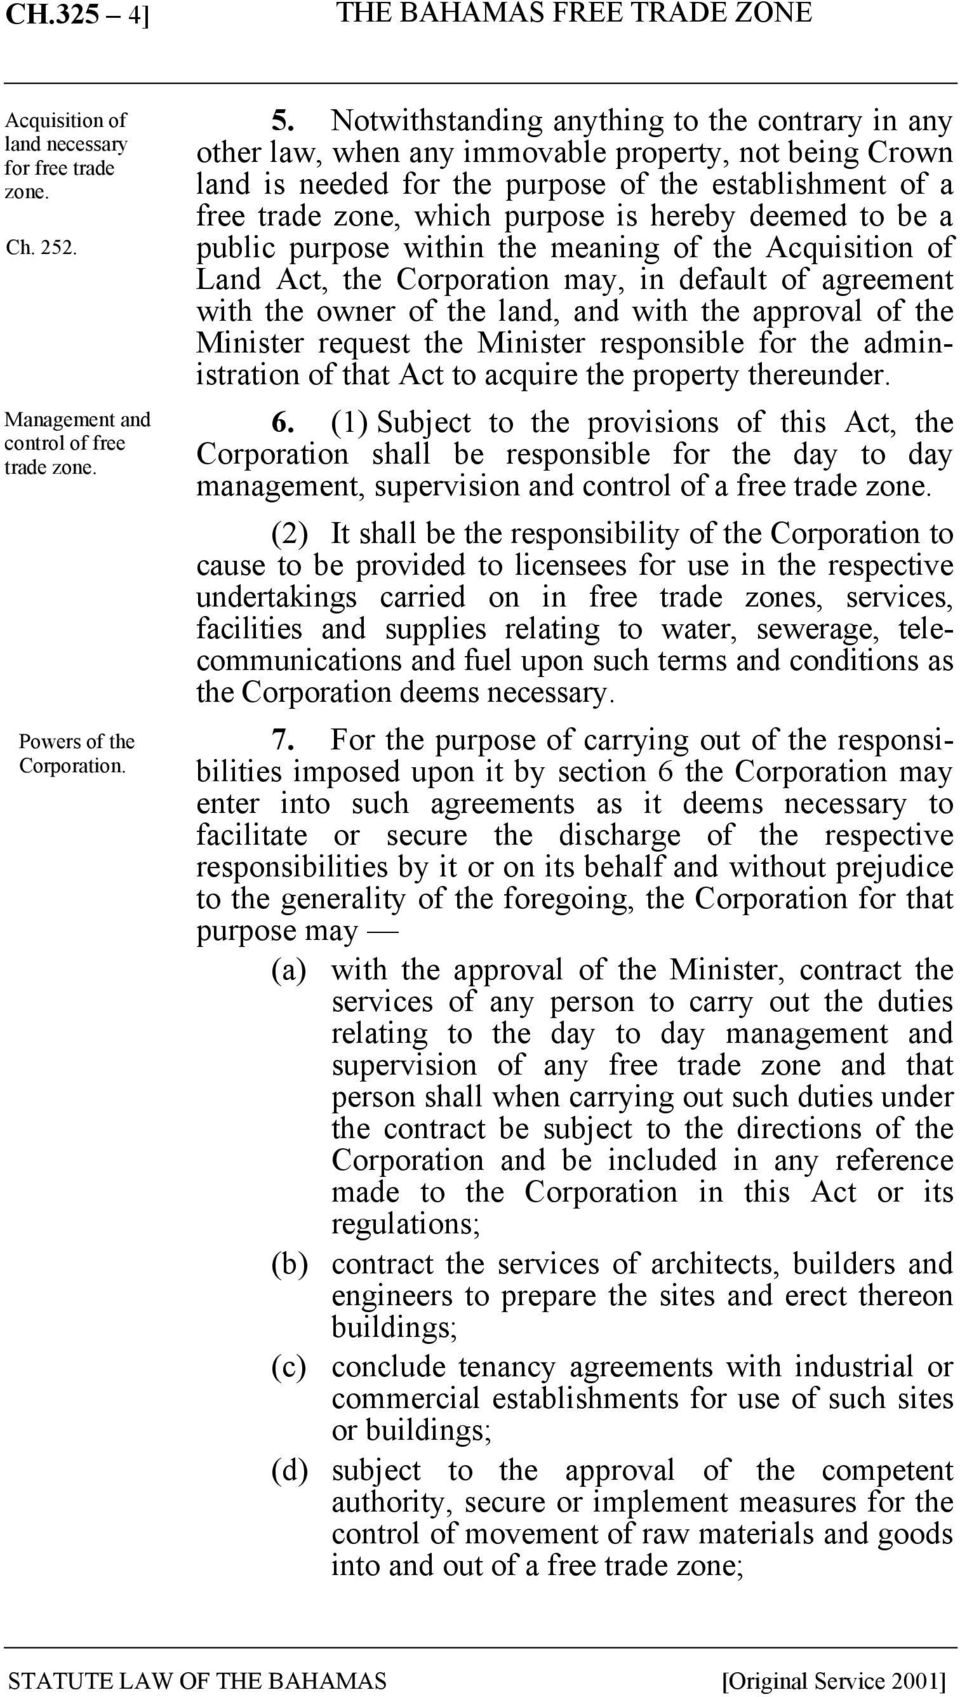 hereby deemed to be a public purpose within the meaning of the Acquisition of Land Act, the Corporation may, in default of agreement with the owner of the land, and with the approval of the Minister